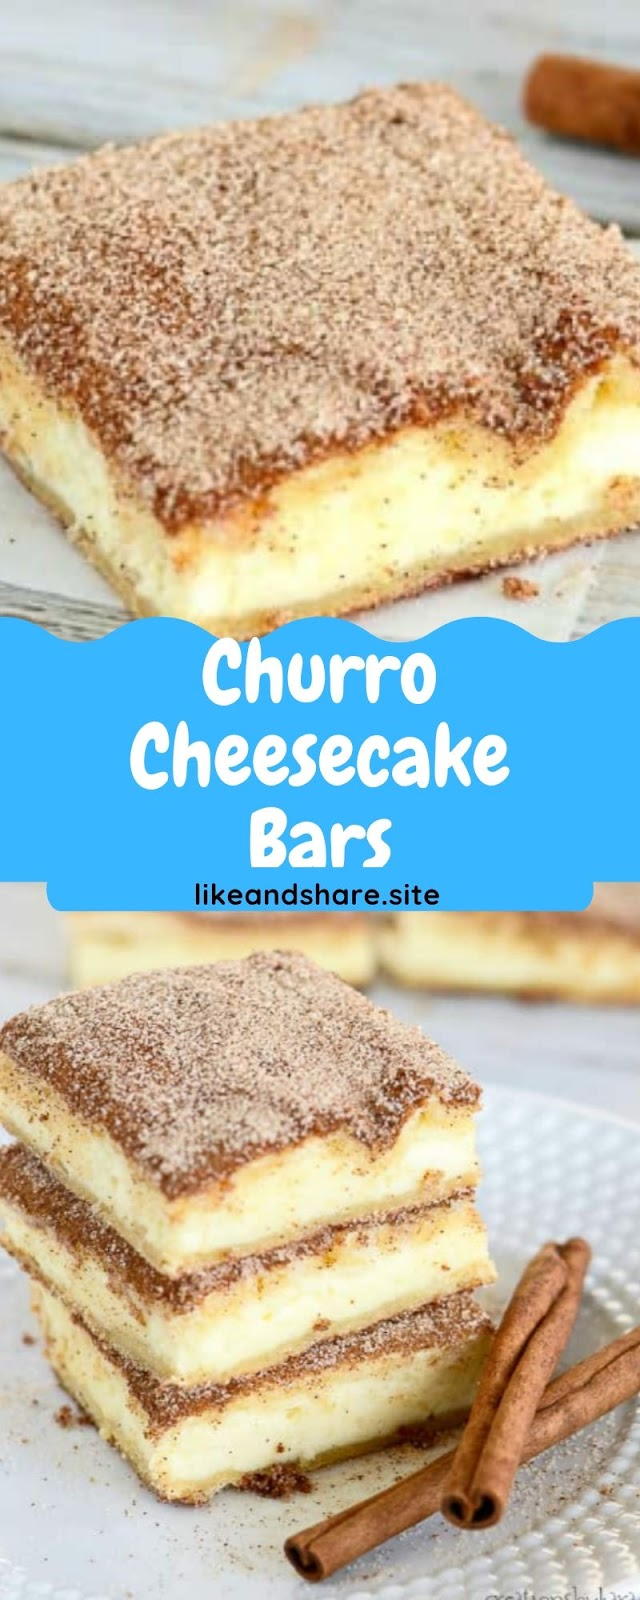 Churro Cheesecake Bars